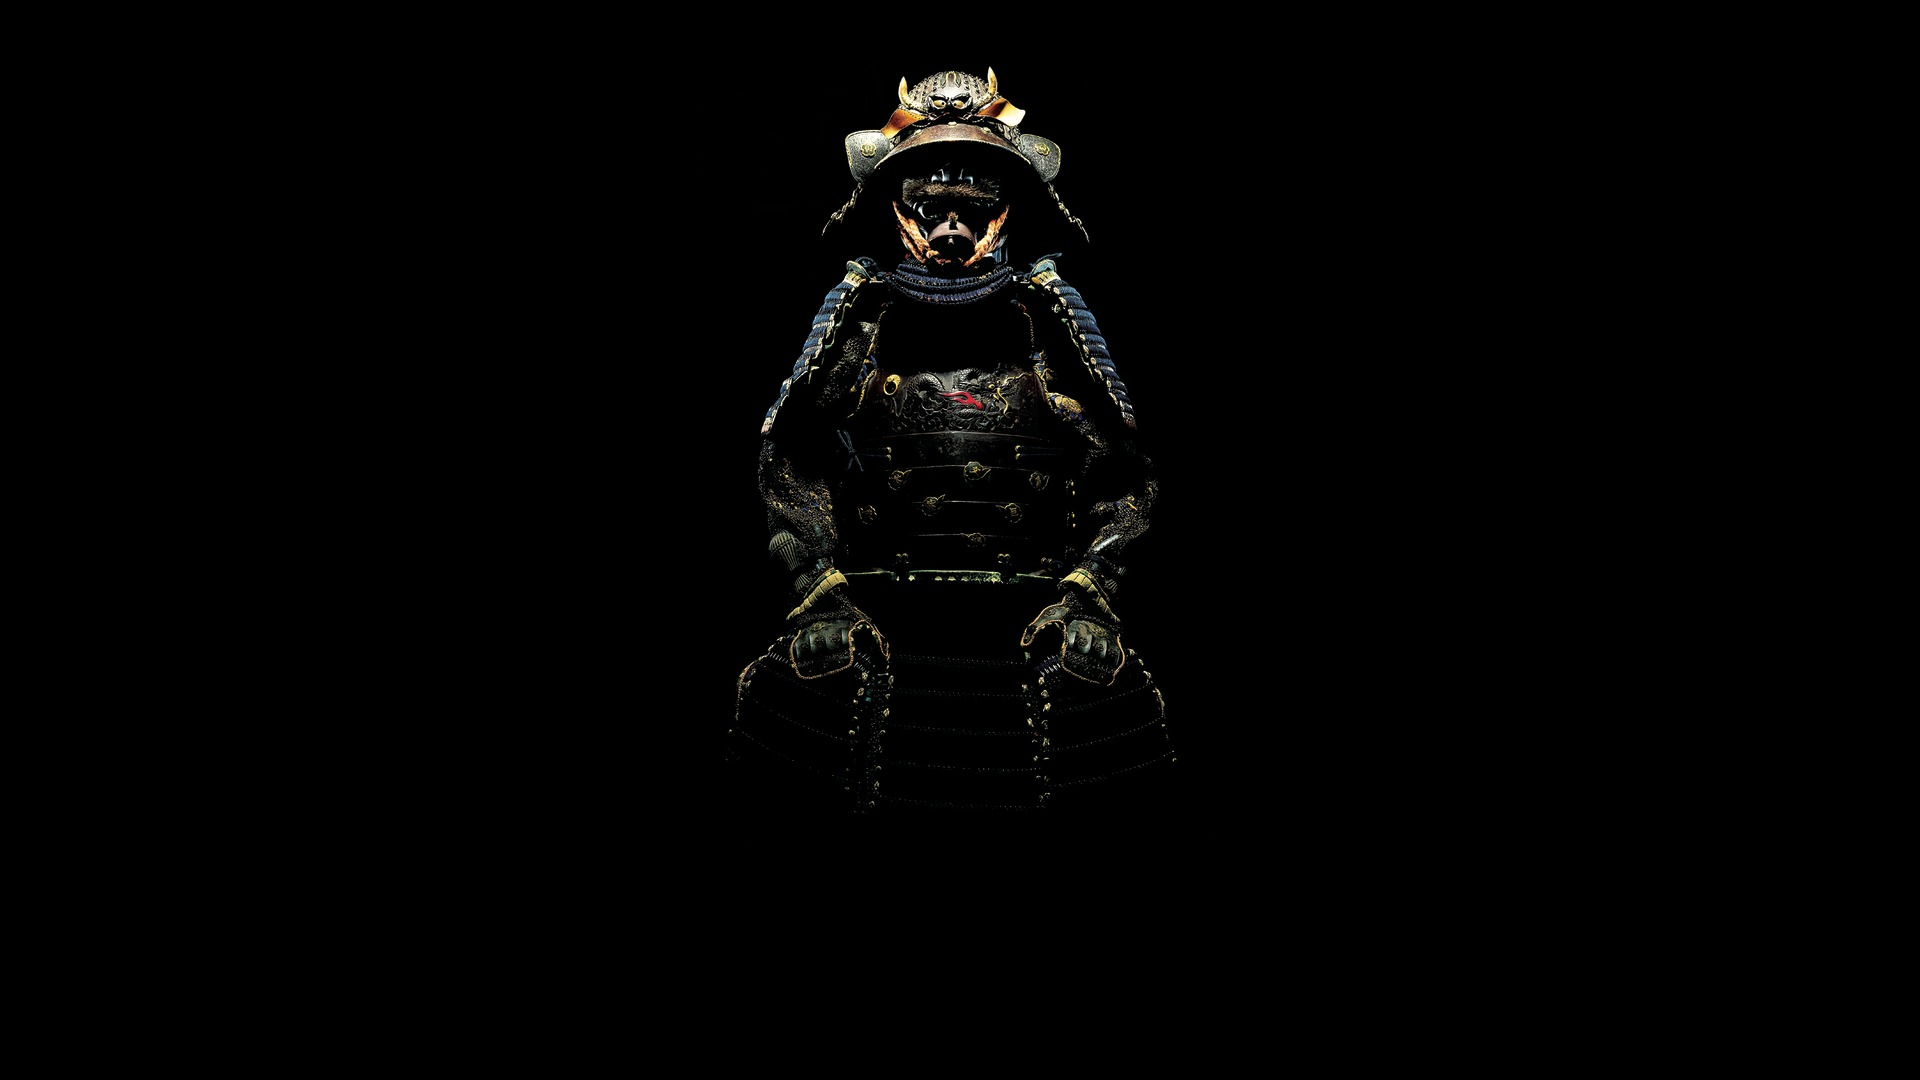 Samurai Wallpaper 7903 1920x1080 px ~ HDWallSource.com